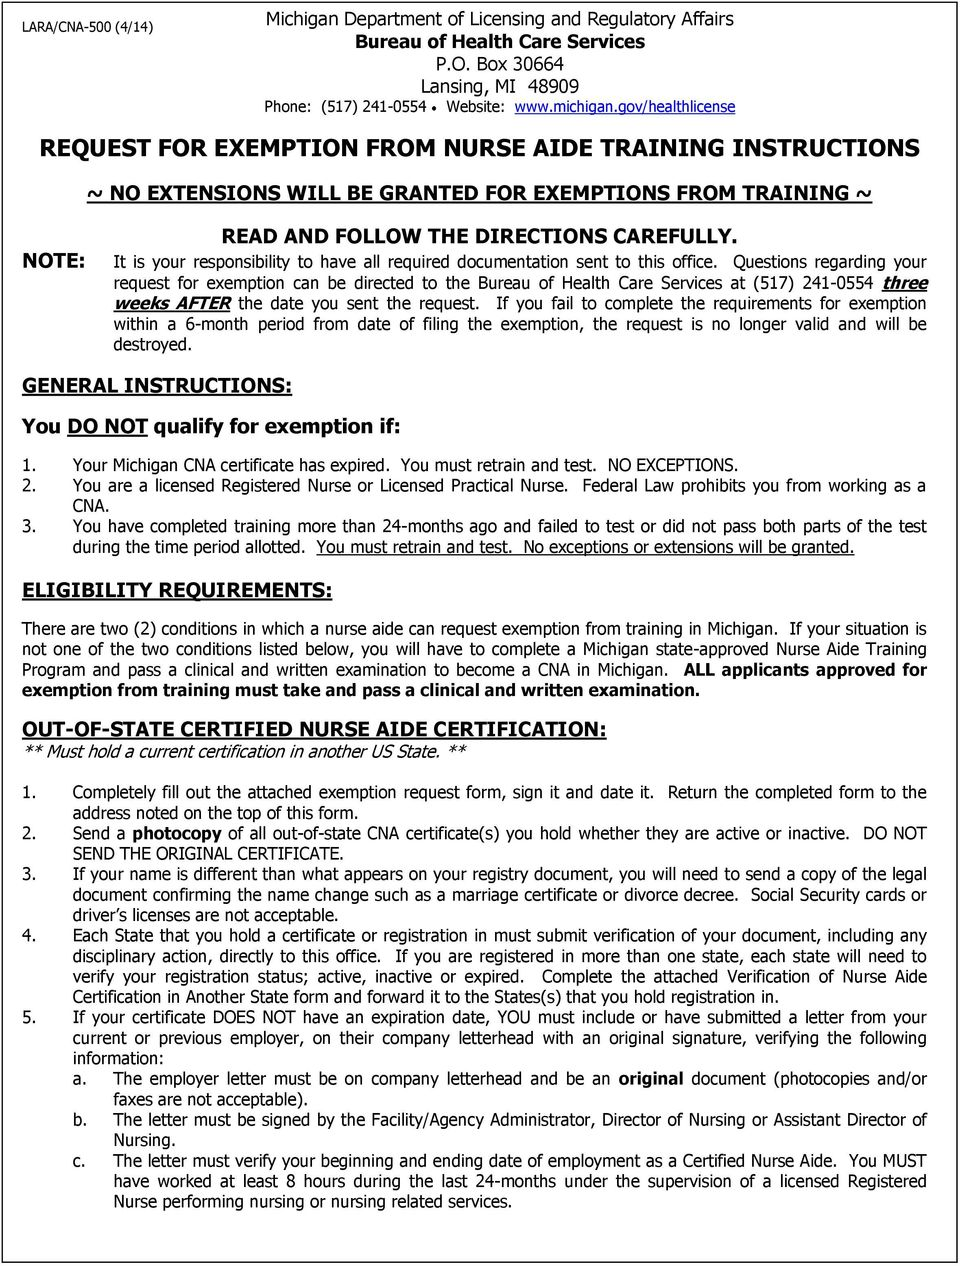 Request For Exemption From Nurse Aide Training Instructions Pdf